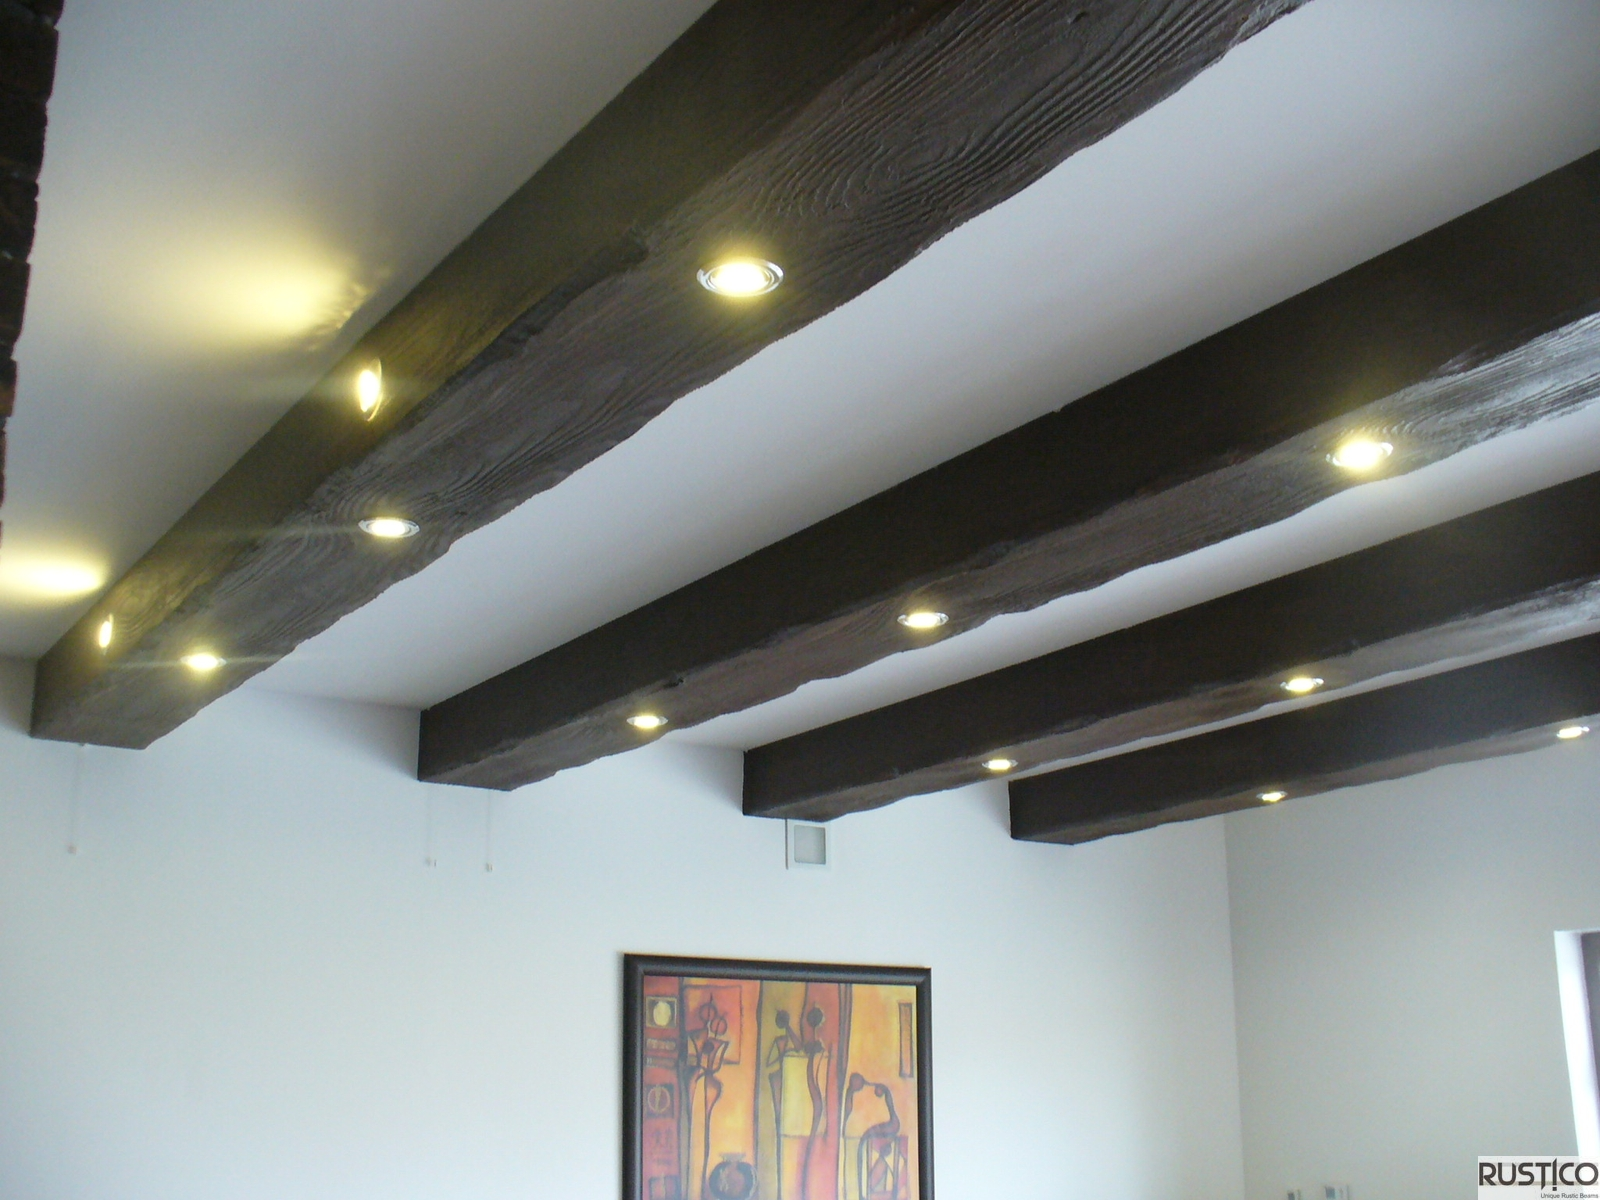 How To Make Faux Beams For Ceilings the world s catalogue ...